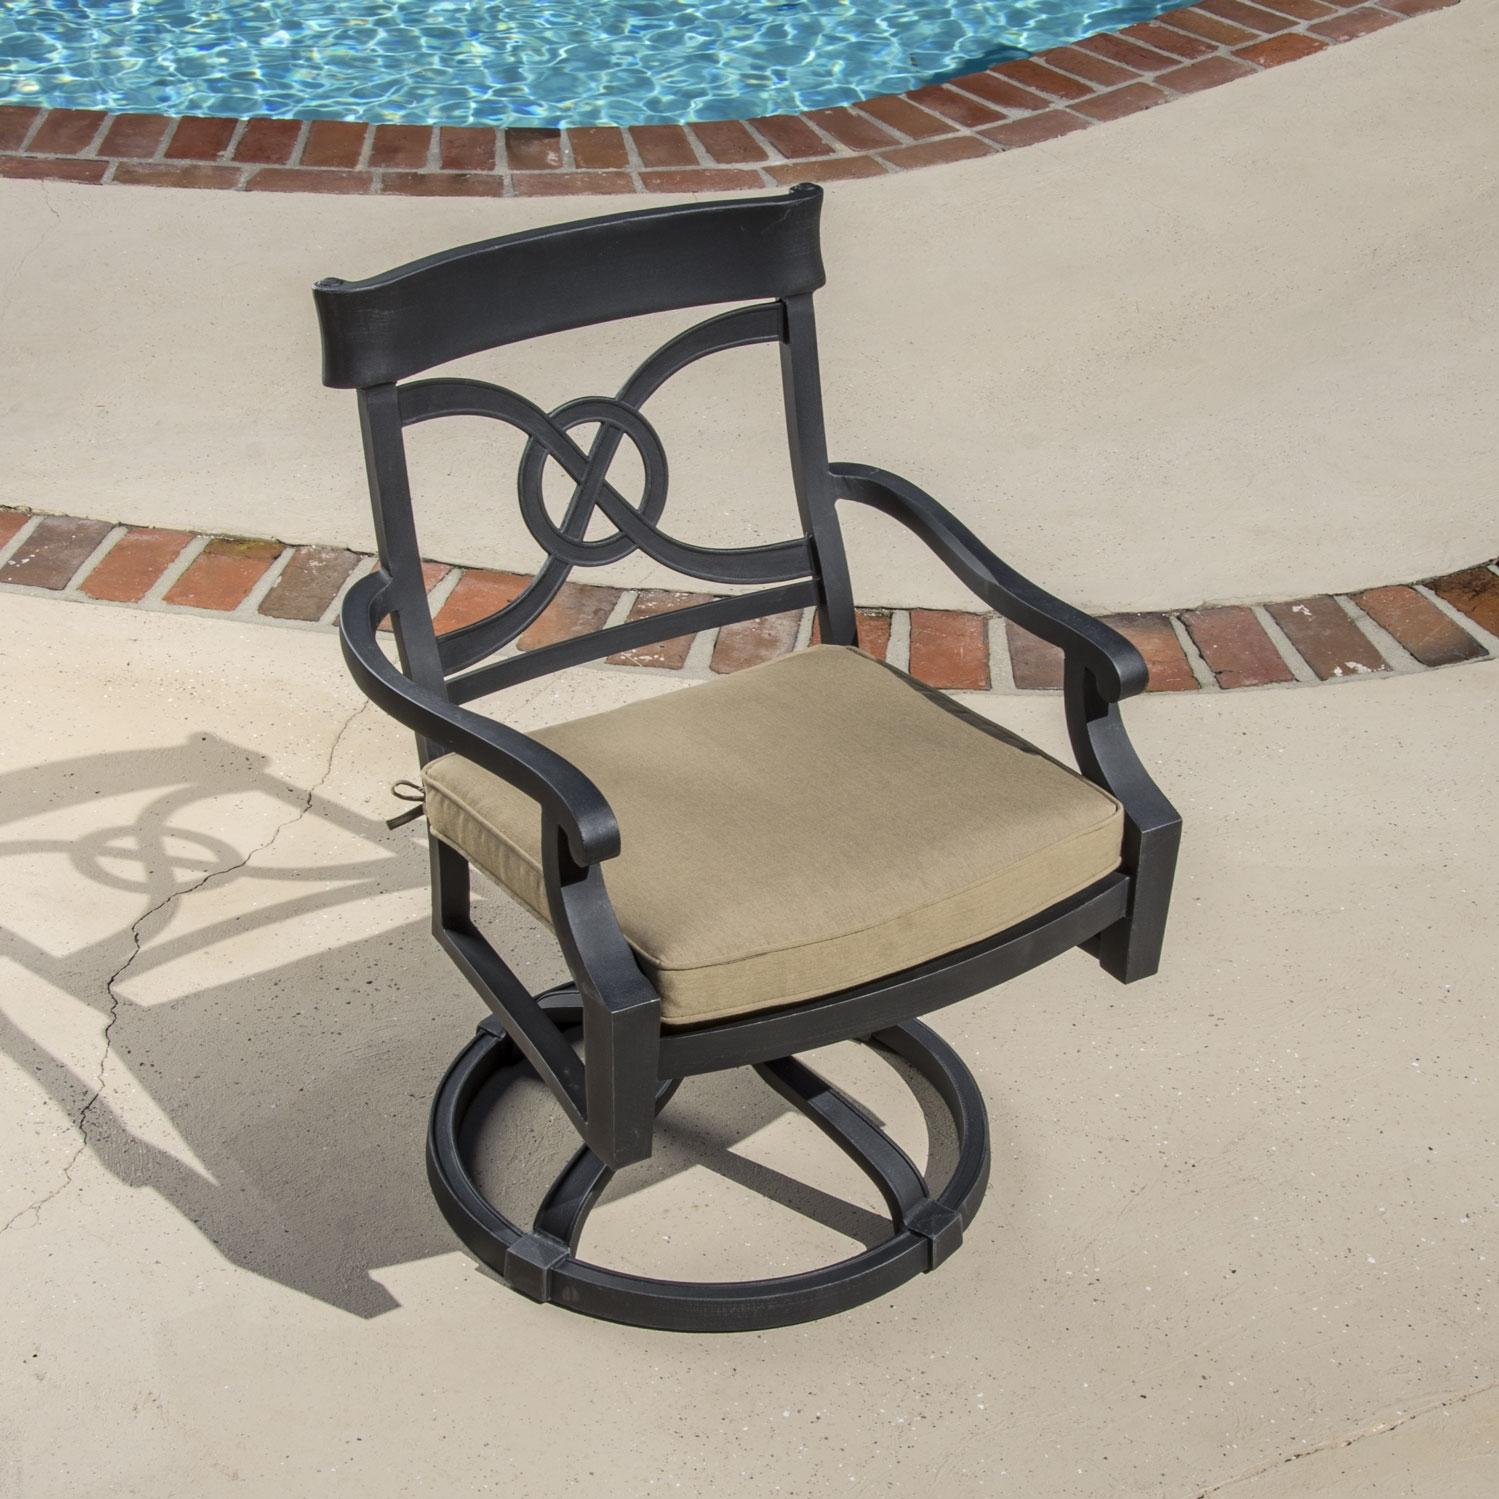 Lakeview Outdoor Designs St. Charles Cast Aluminum Swivel Rocker Patio Dining Chair at Sears.com